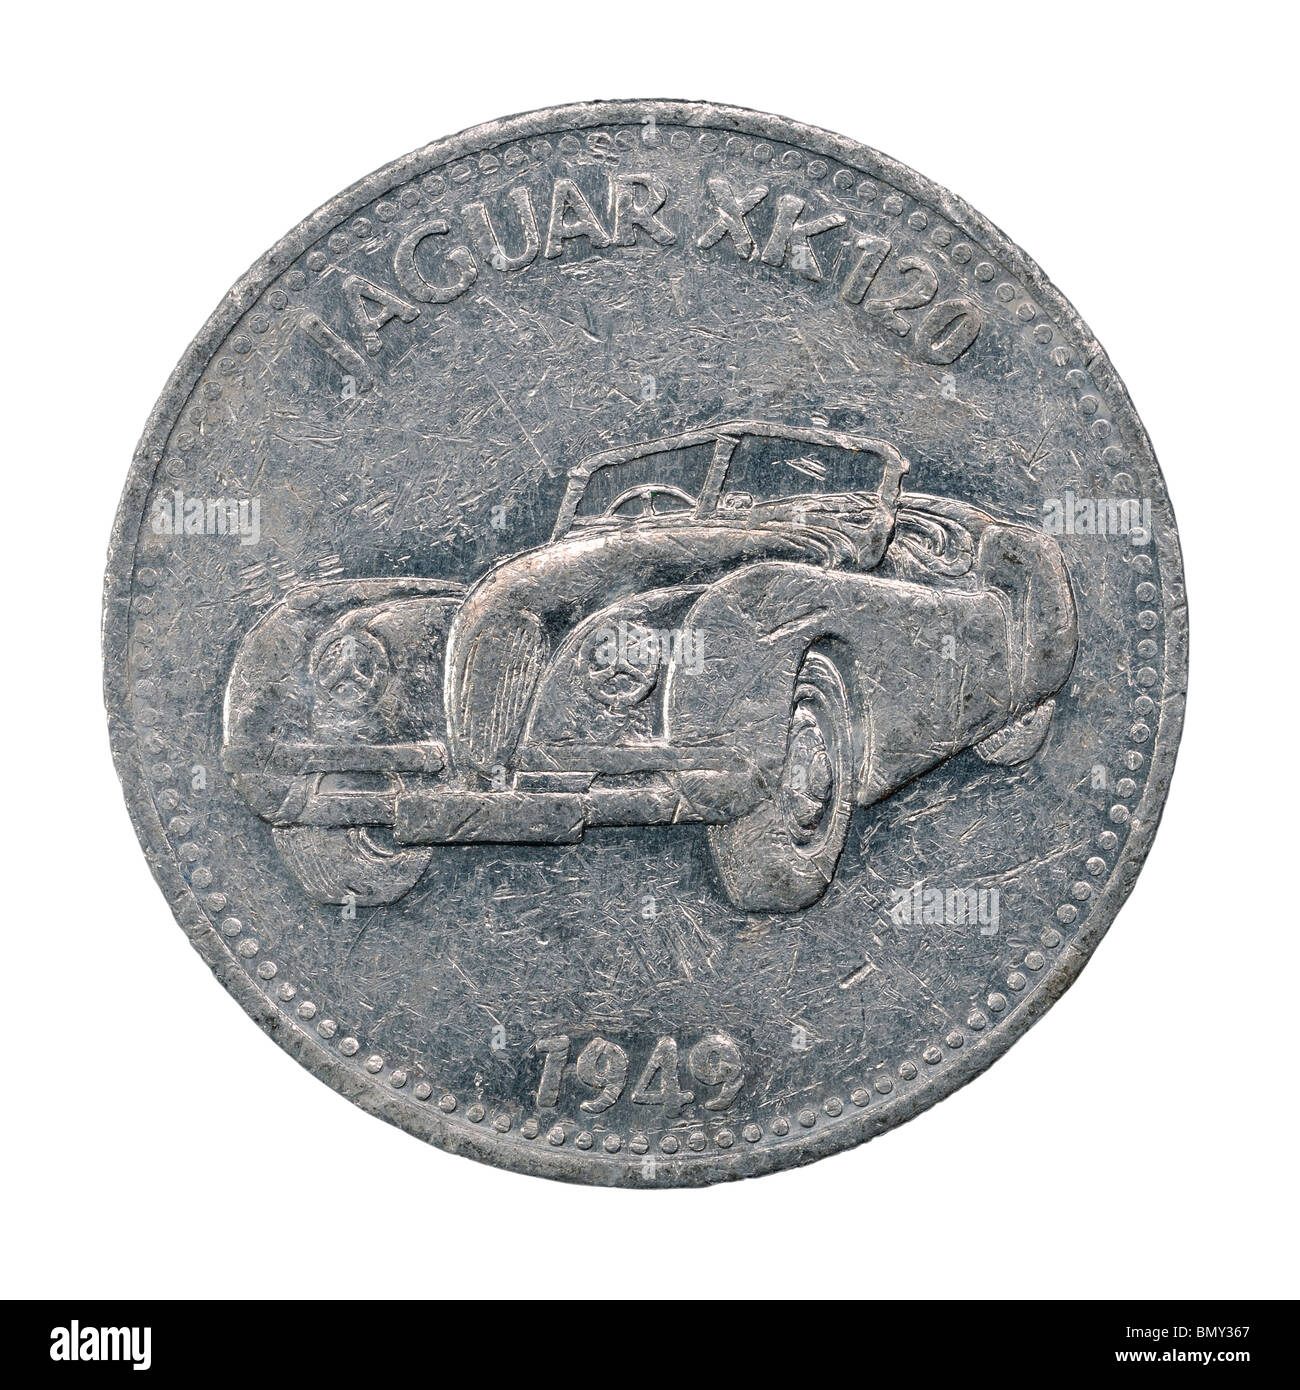 Jaguar XK 120 metal token - Stock Image